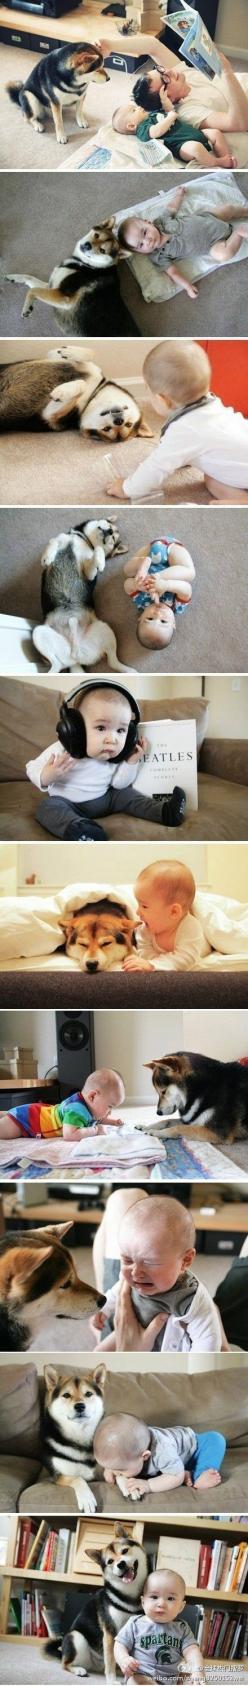 Baby & dog OMG the most precious thing everrrrrrrrr: Babies, Dogs, Sweet, Best Friends, Shiba Inu, Puppy, Kid, Animal